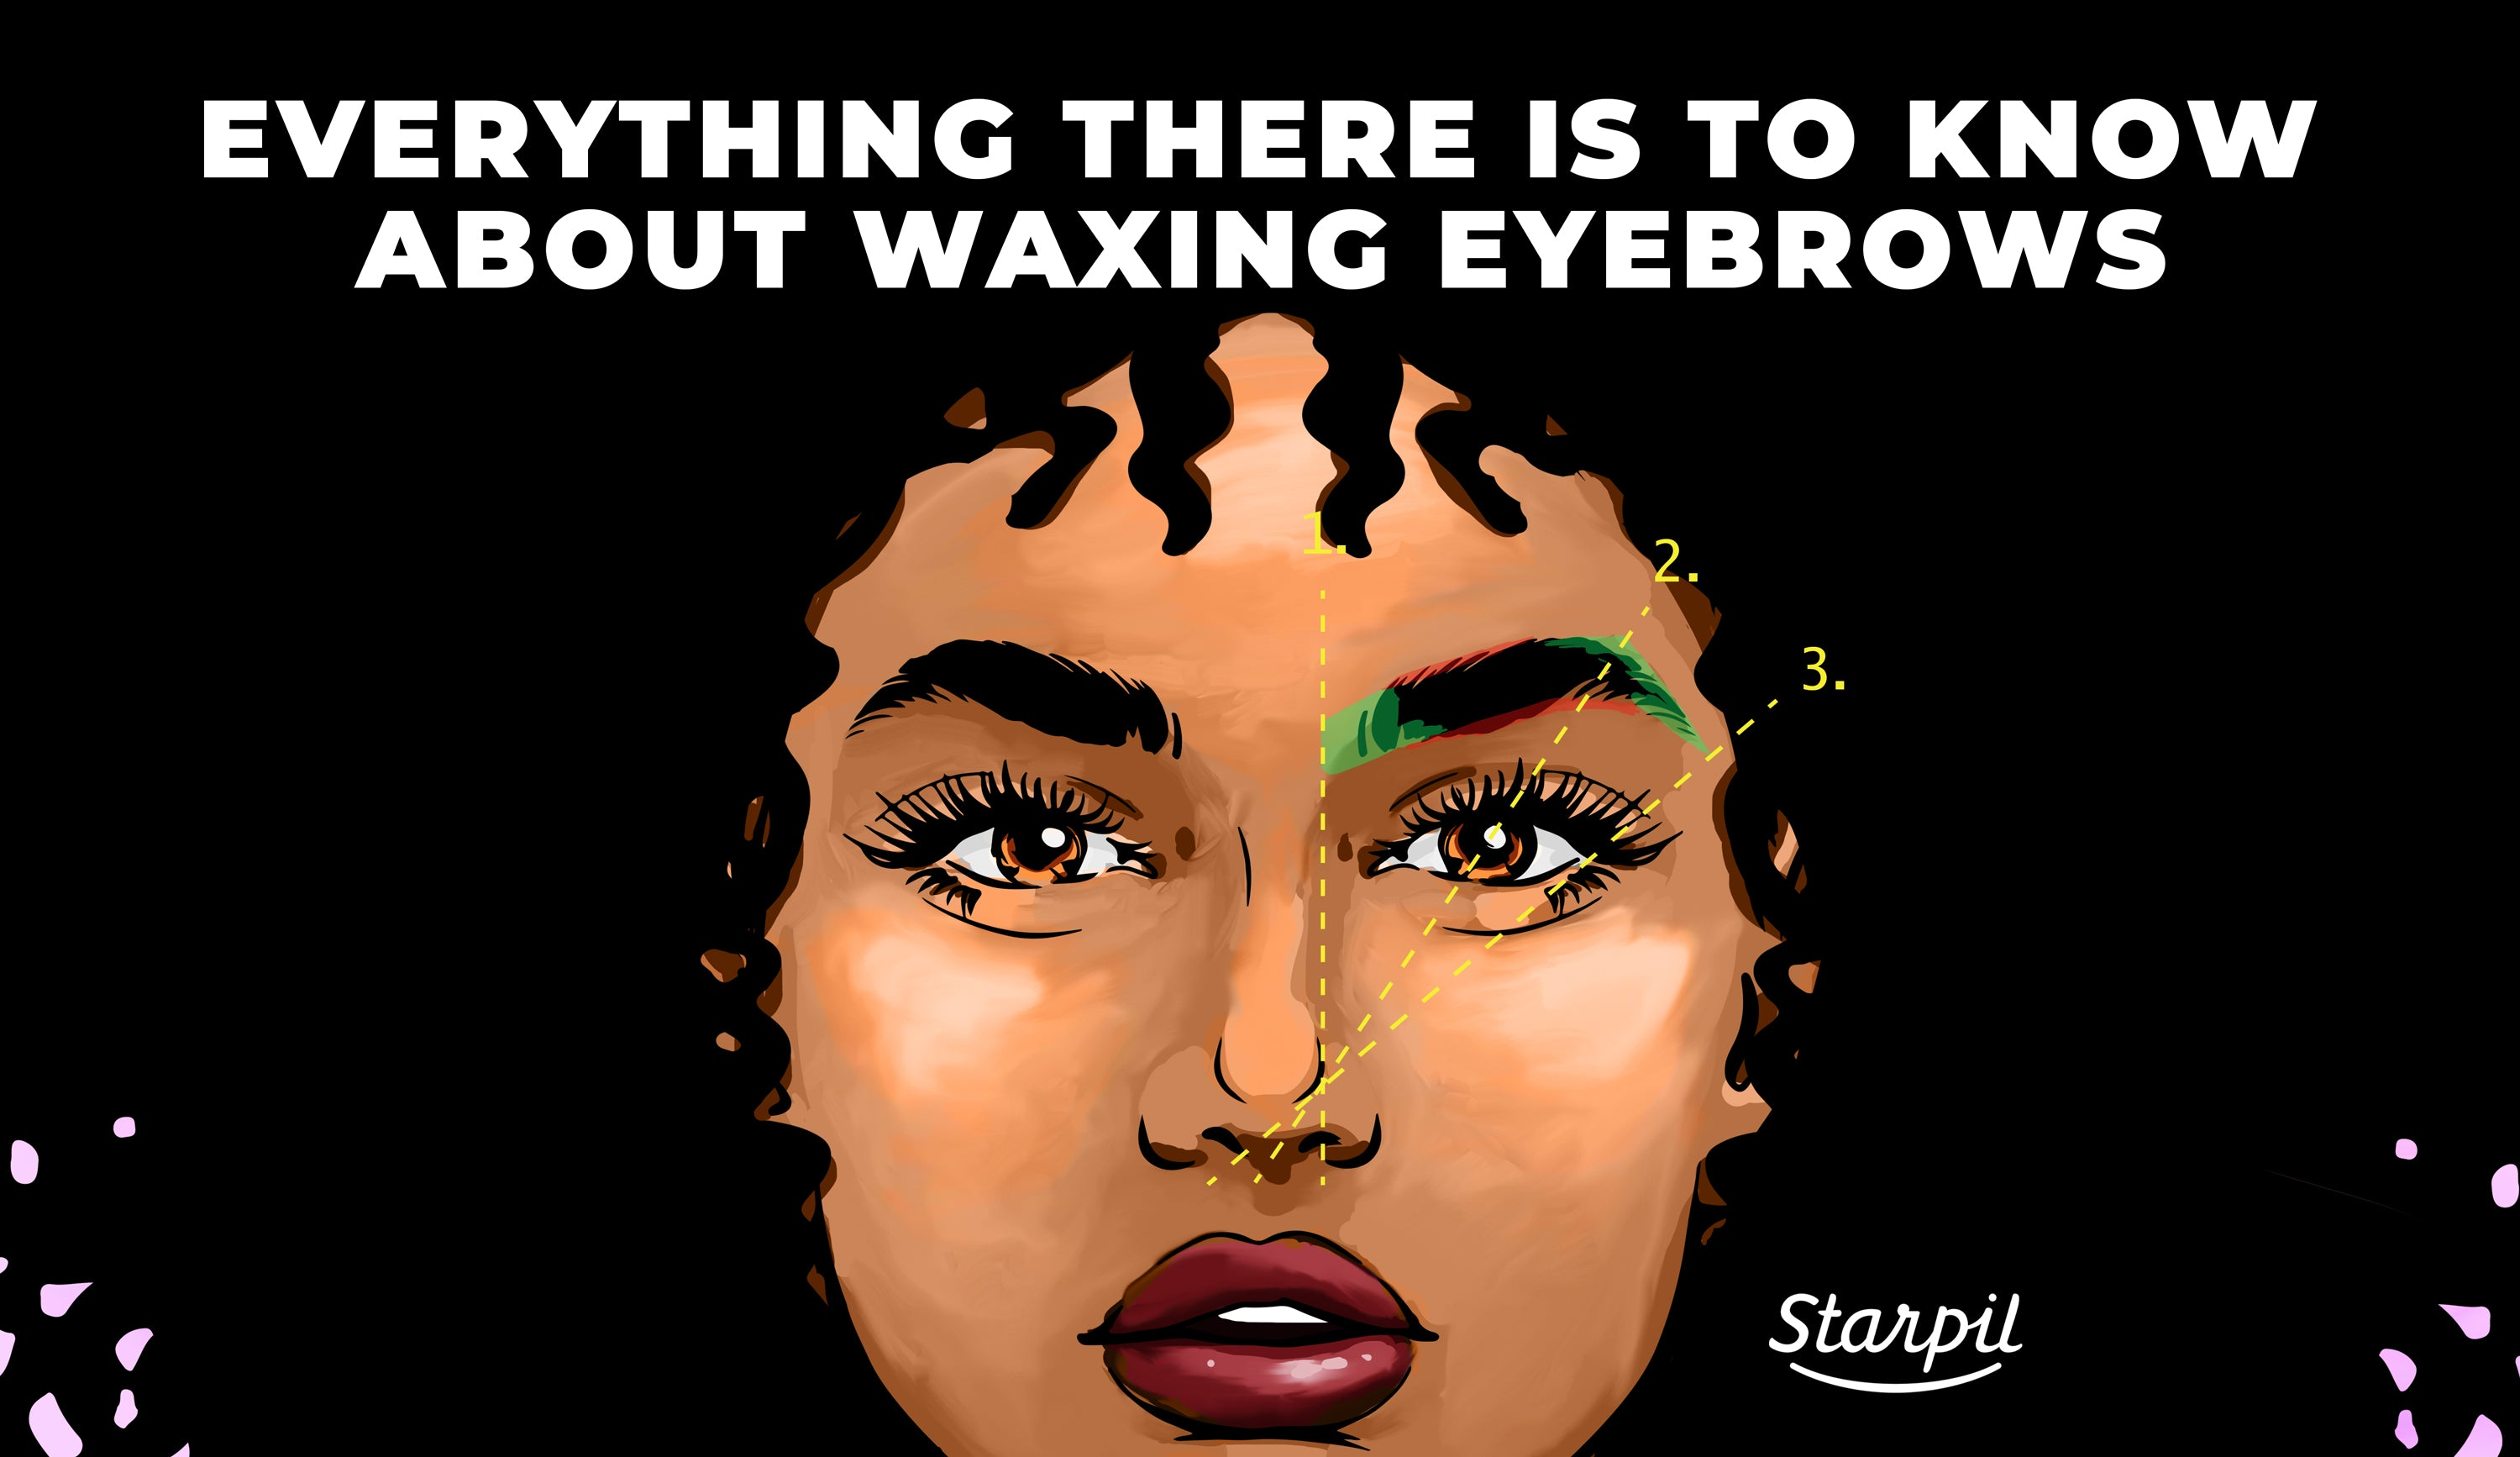 Everything There is to Know About Waxing Eyebrows